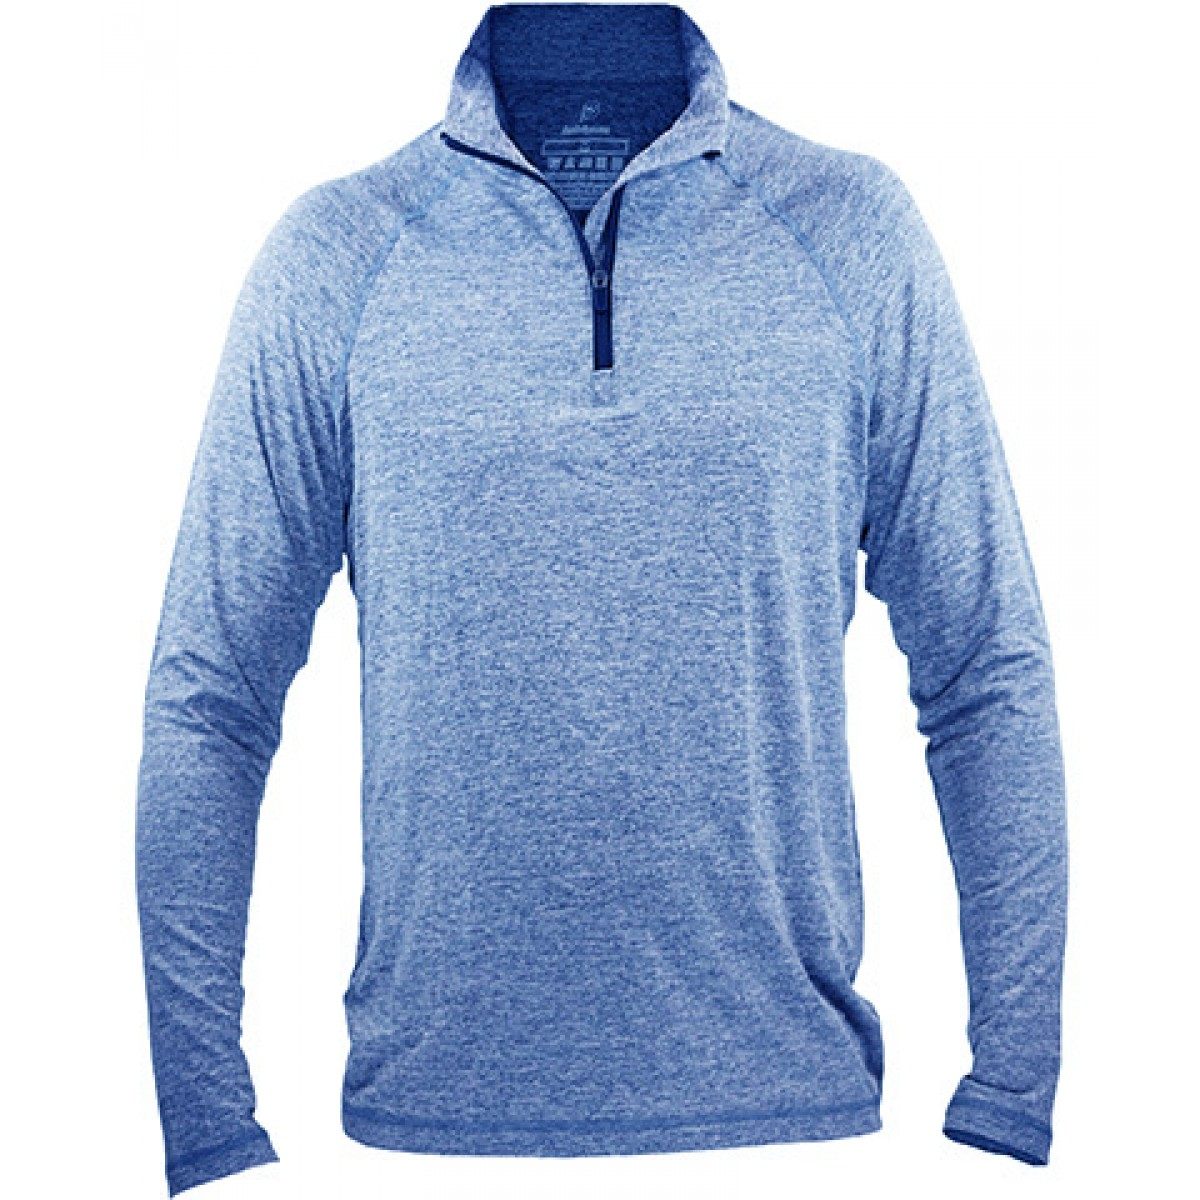 Fine Designs Blend 1/4-Zip Pullover-Blue-2XL